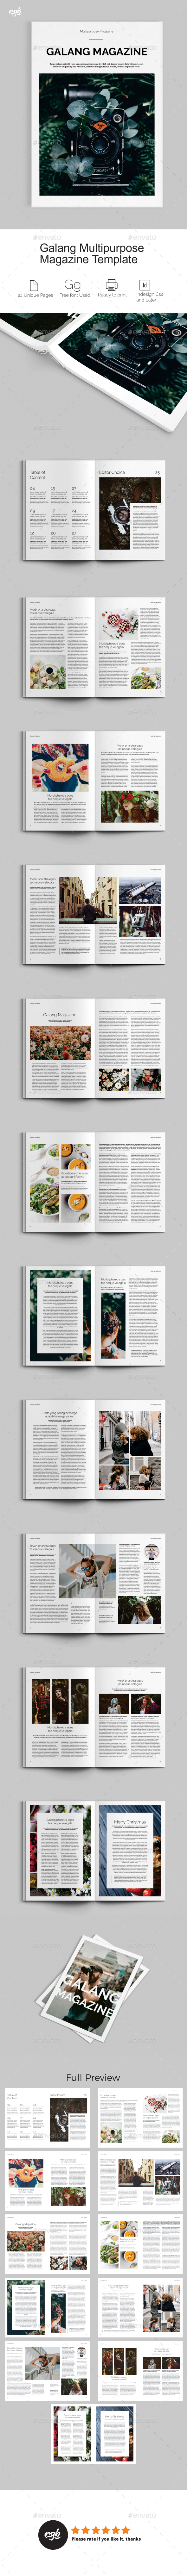 GraphicRiver Galang Magazine Template 21179232